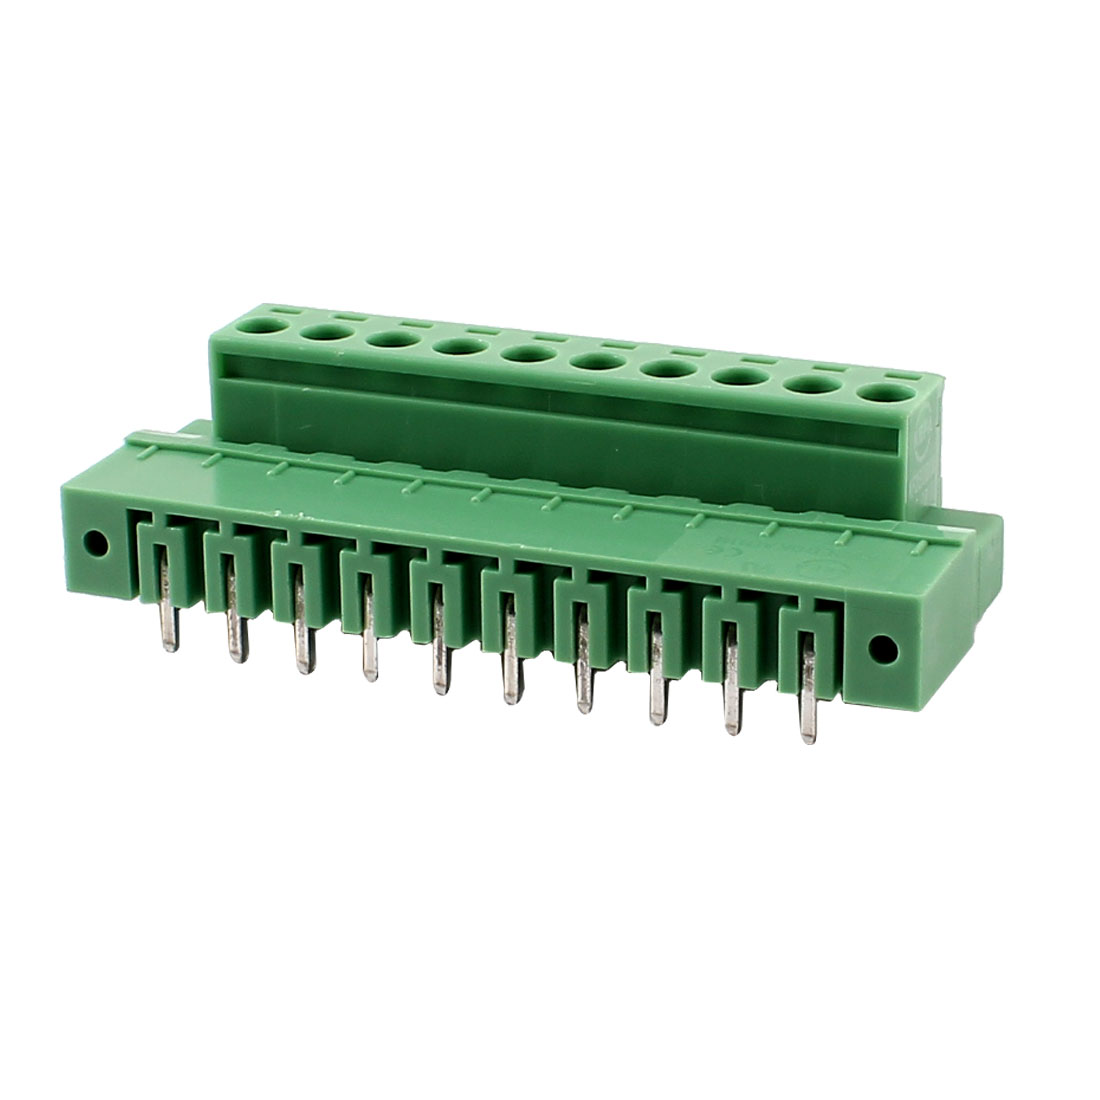 Pair Single Row 10 Positions 5.08mm Right Angle Pluggable Terminal Block